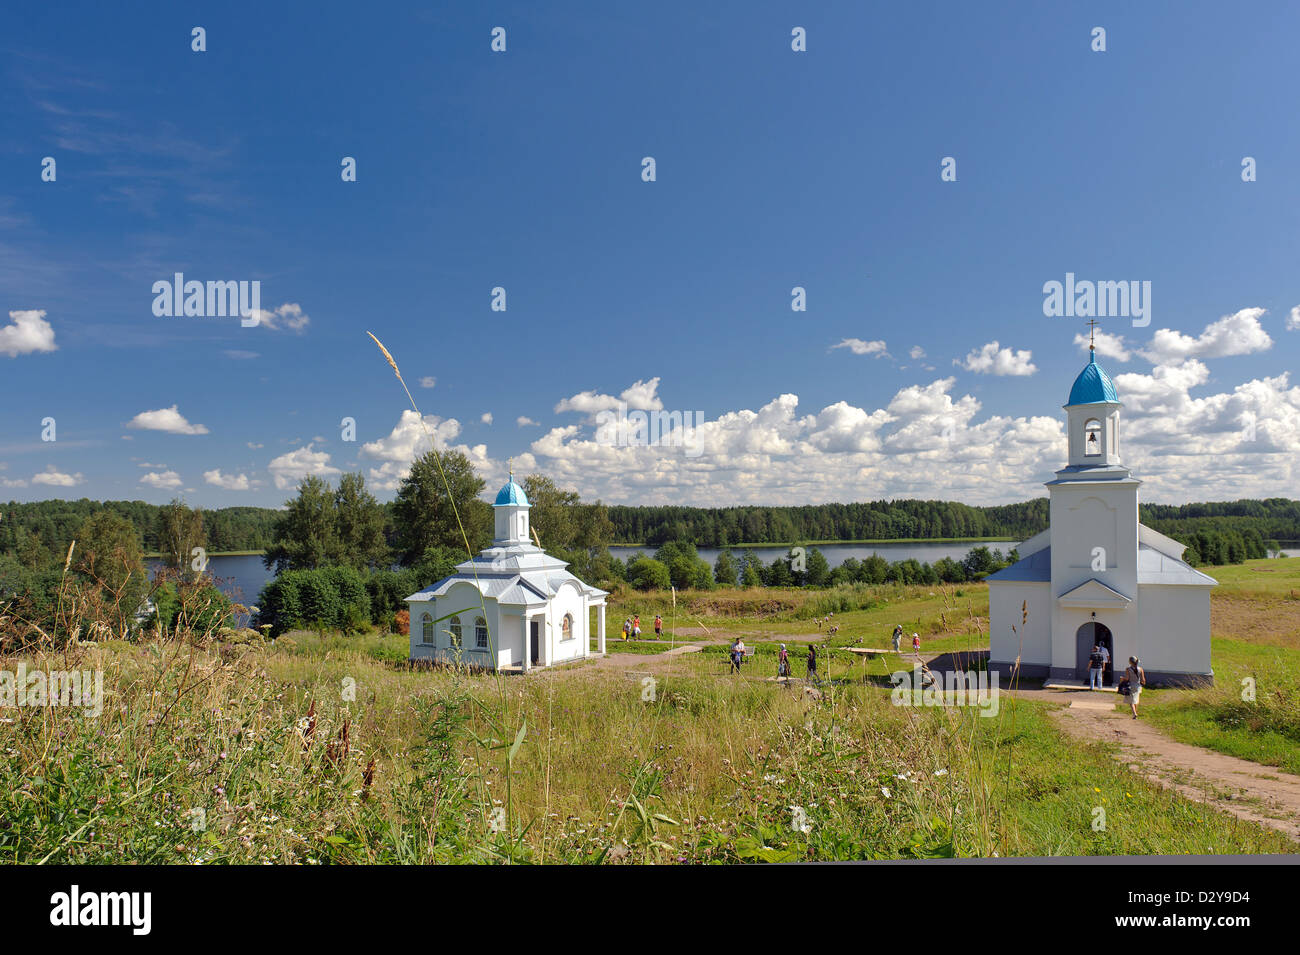 Pokrovo-Tervenichesky convent in the Leningrad region - Stock Image